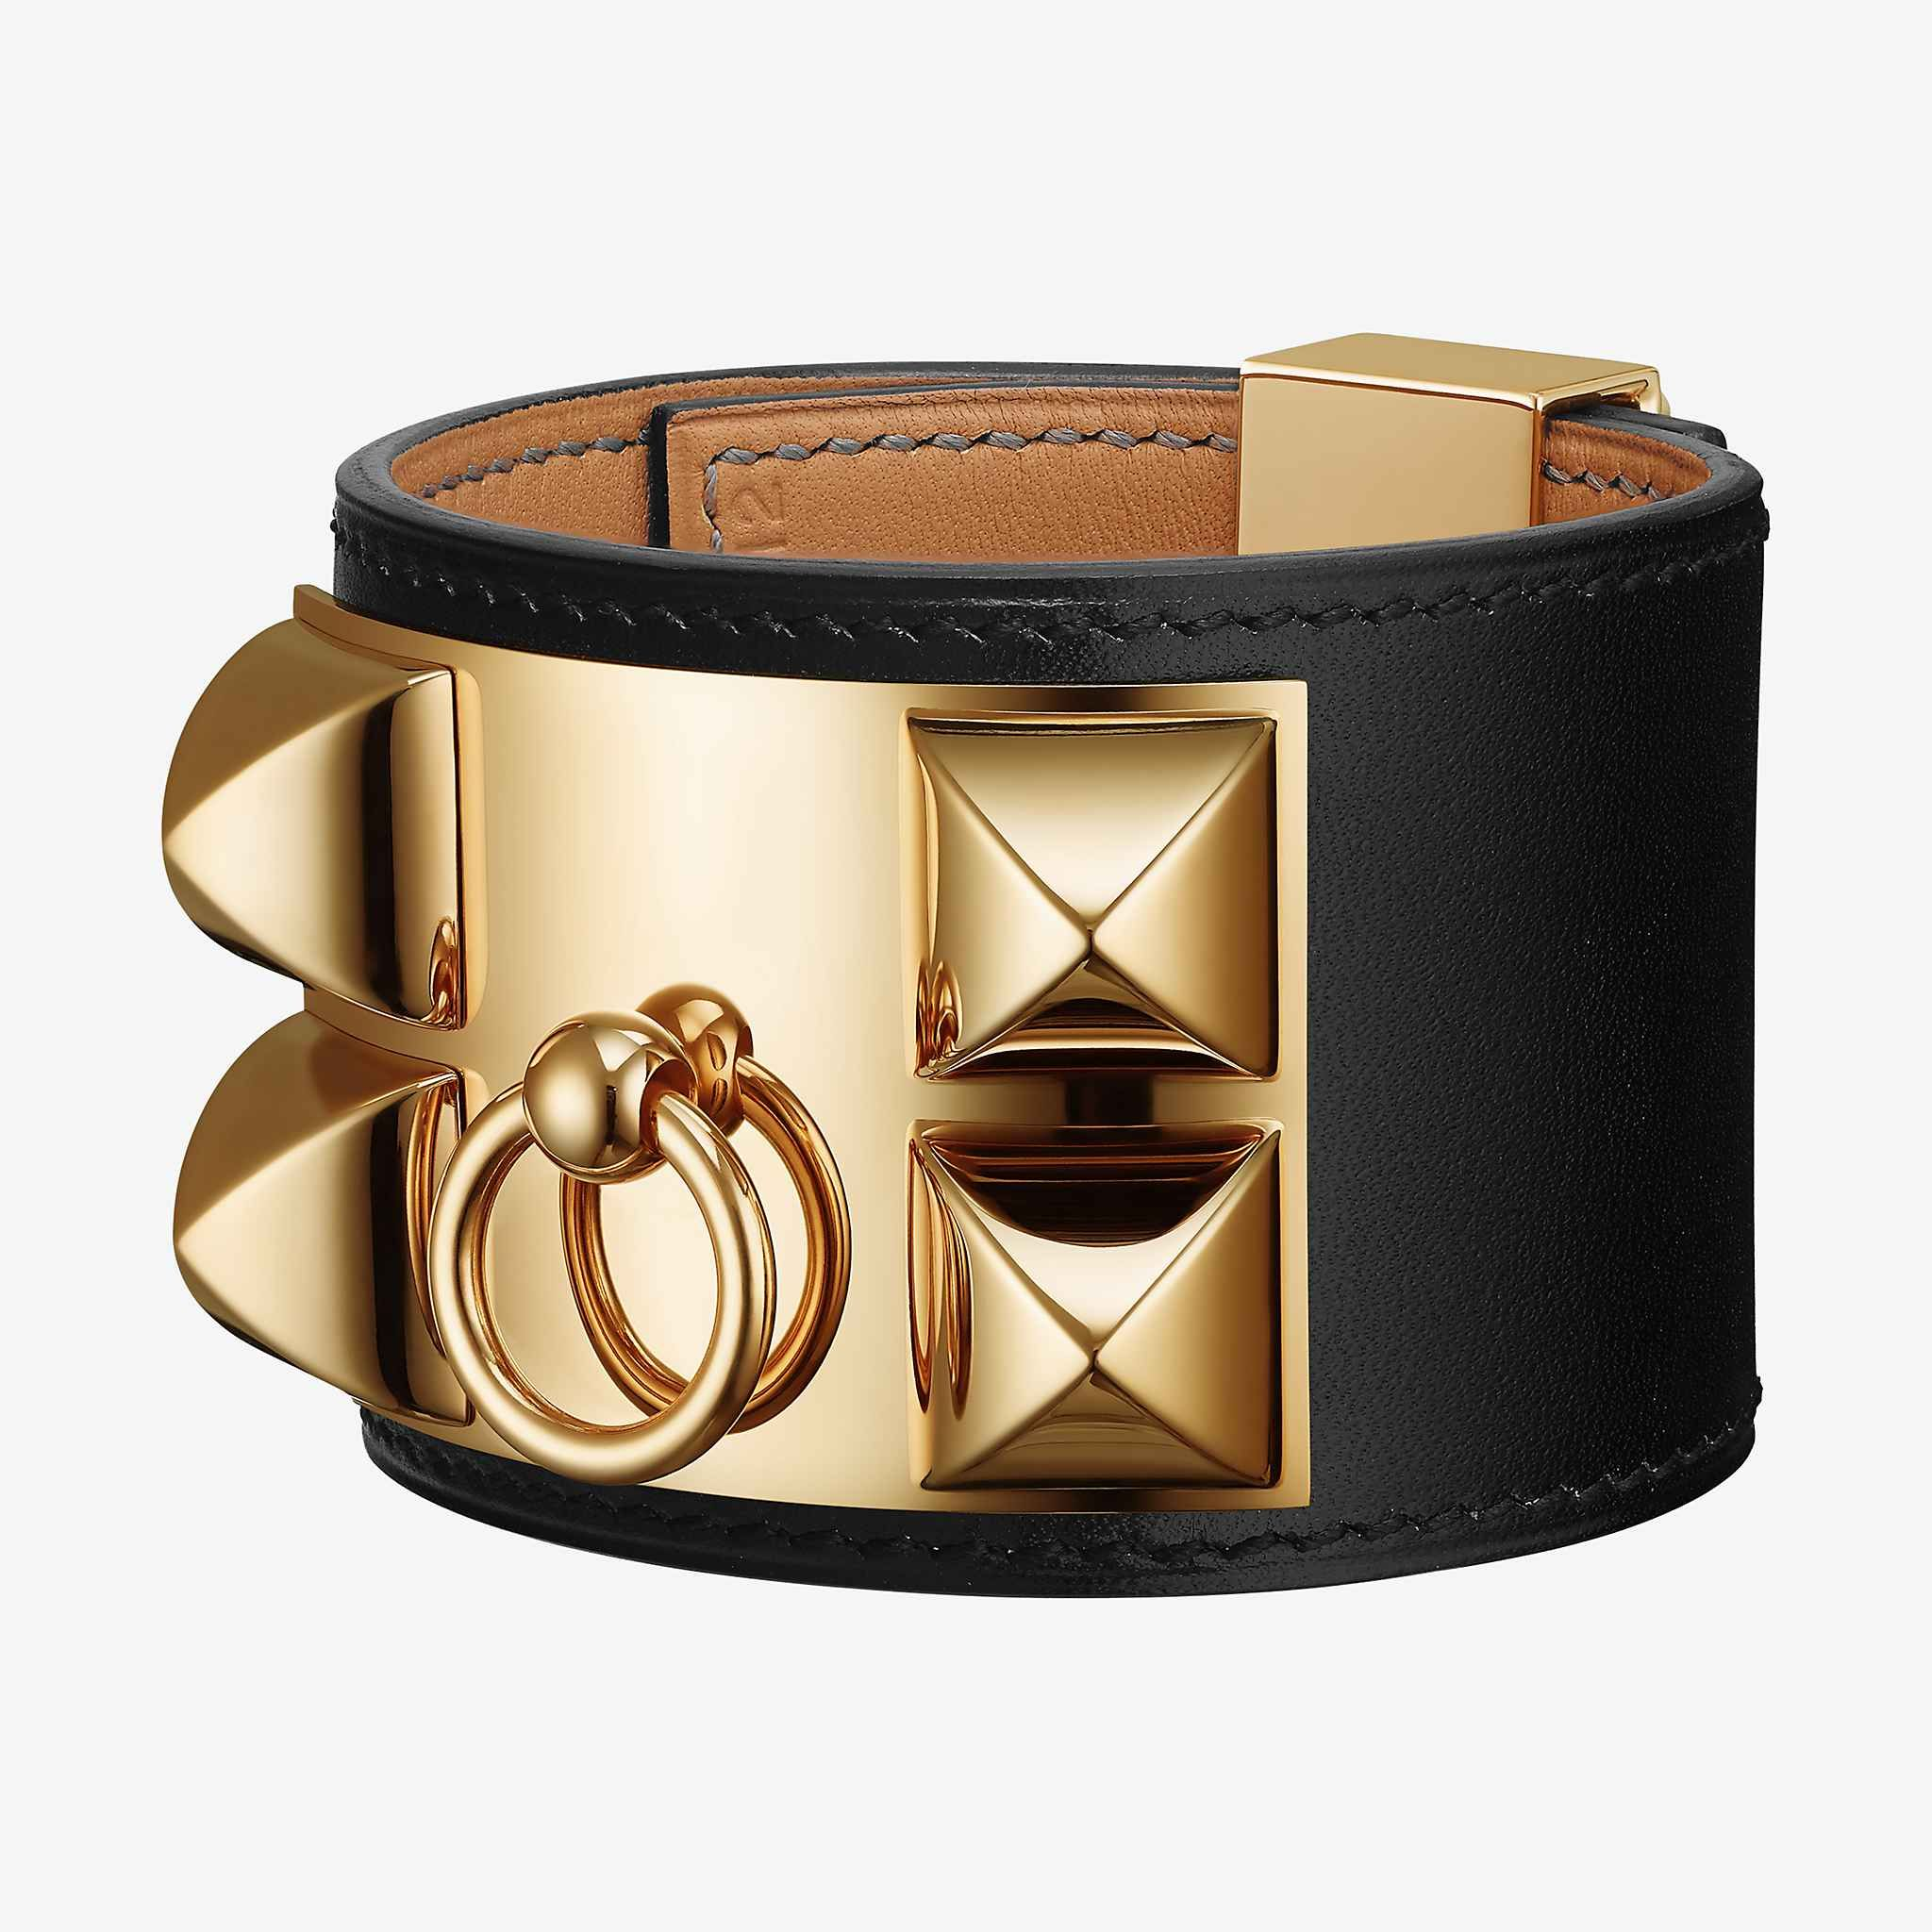 enlarged collier s hermes herm bracelet realreal de products the jewelry bracelets cuff chien